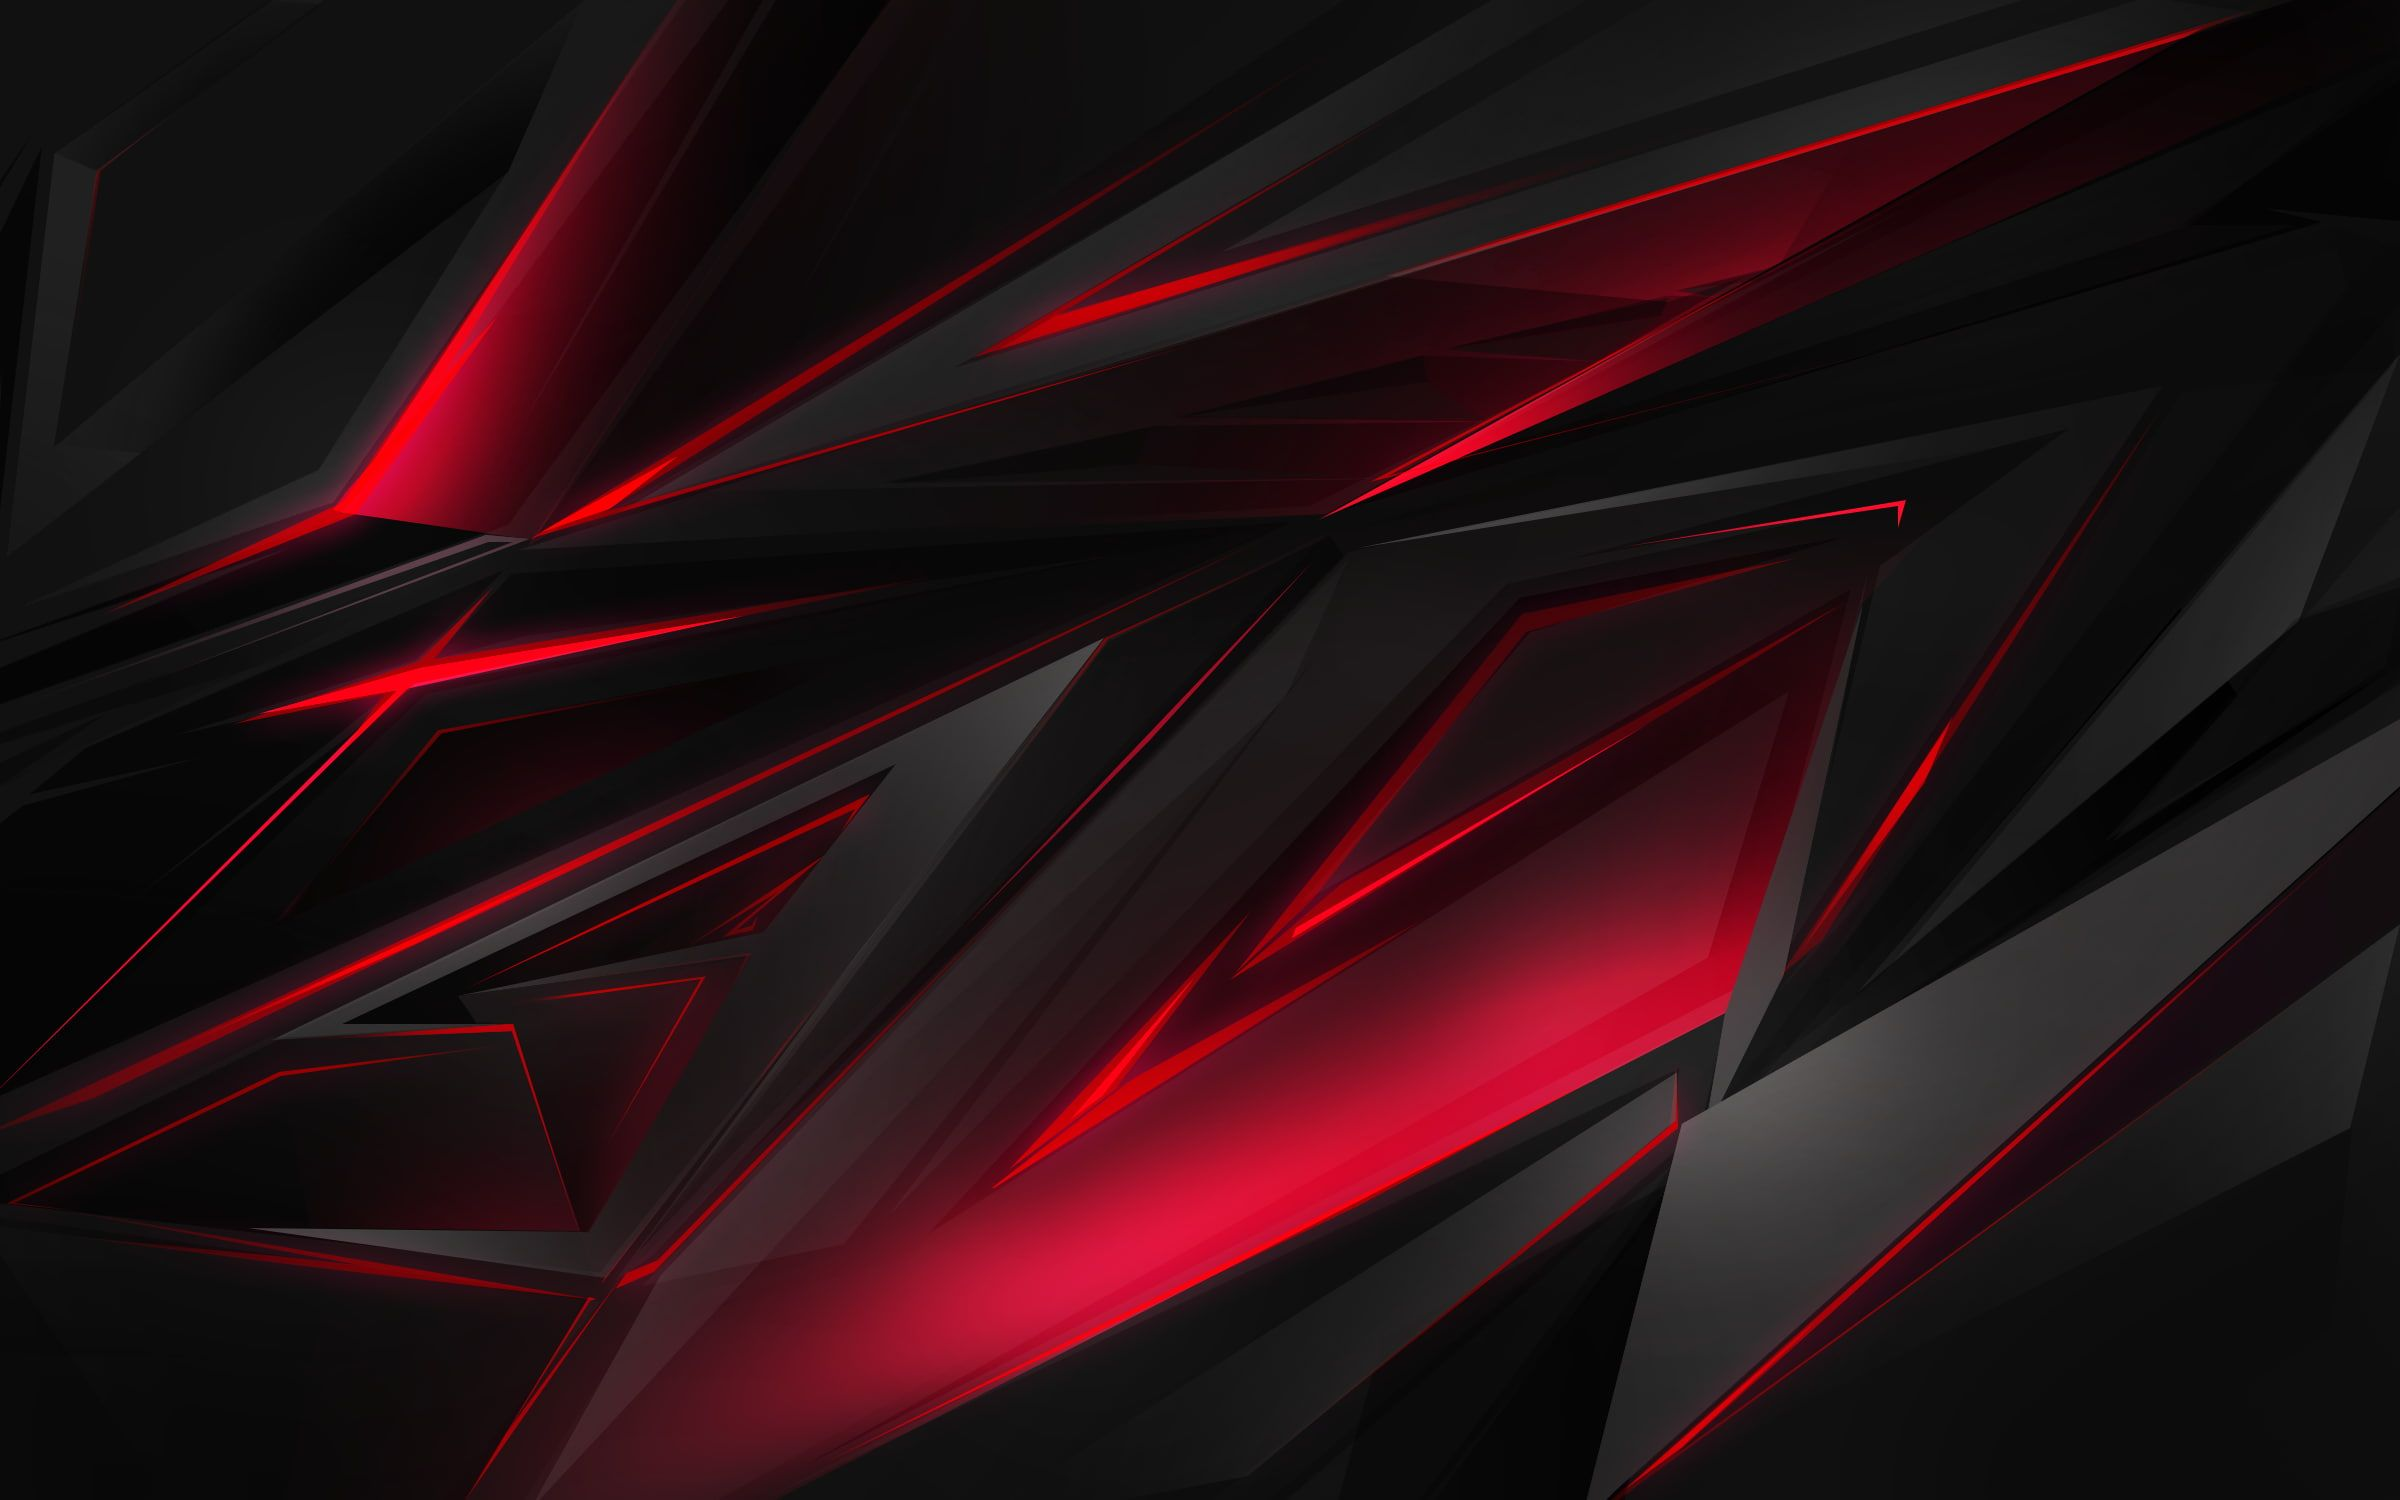 Abstract 3d Digital Art Dark Red Black 1080p Wallpaper